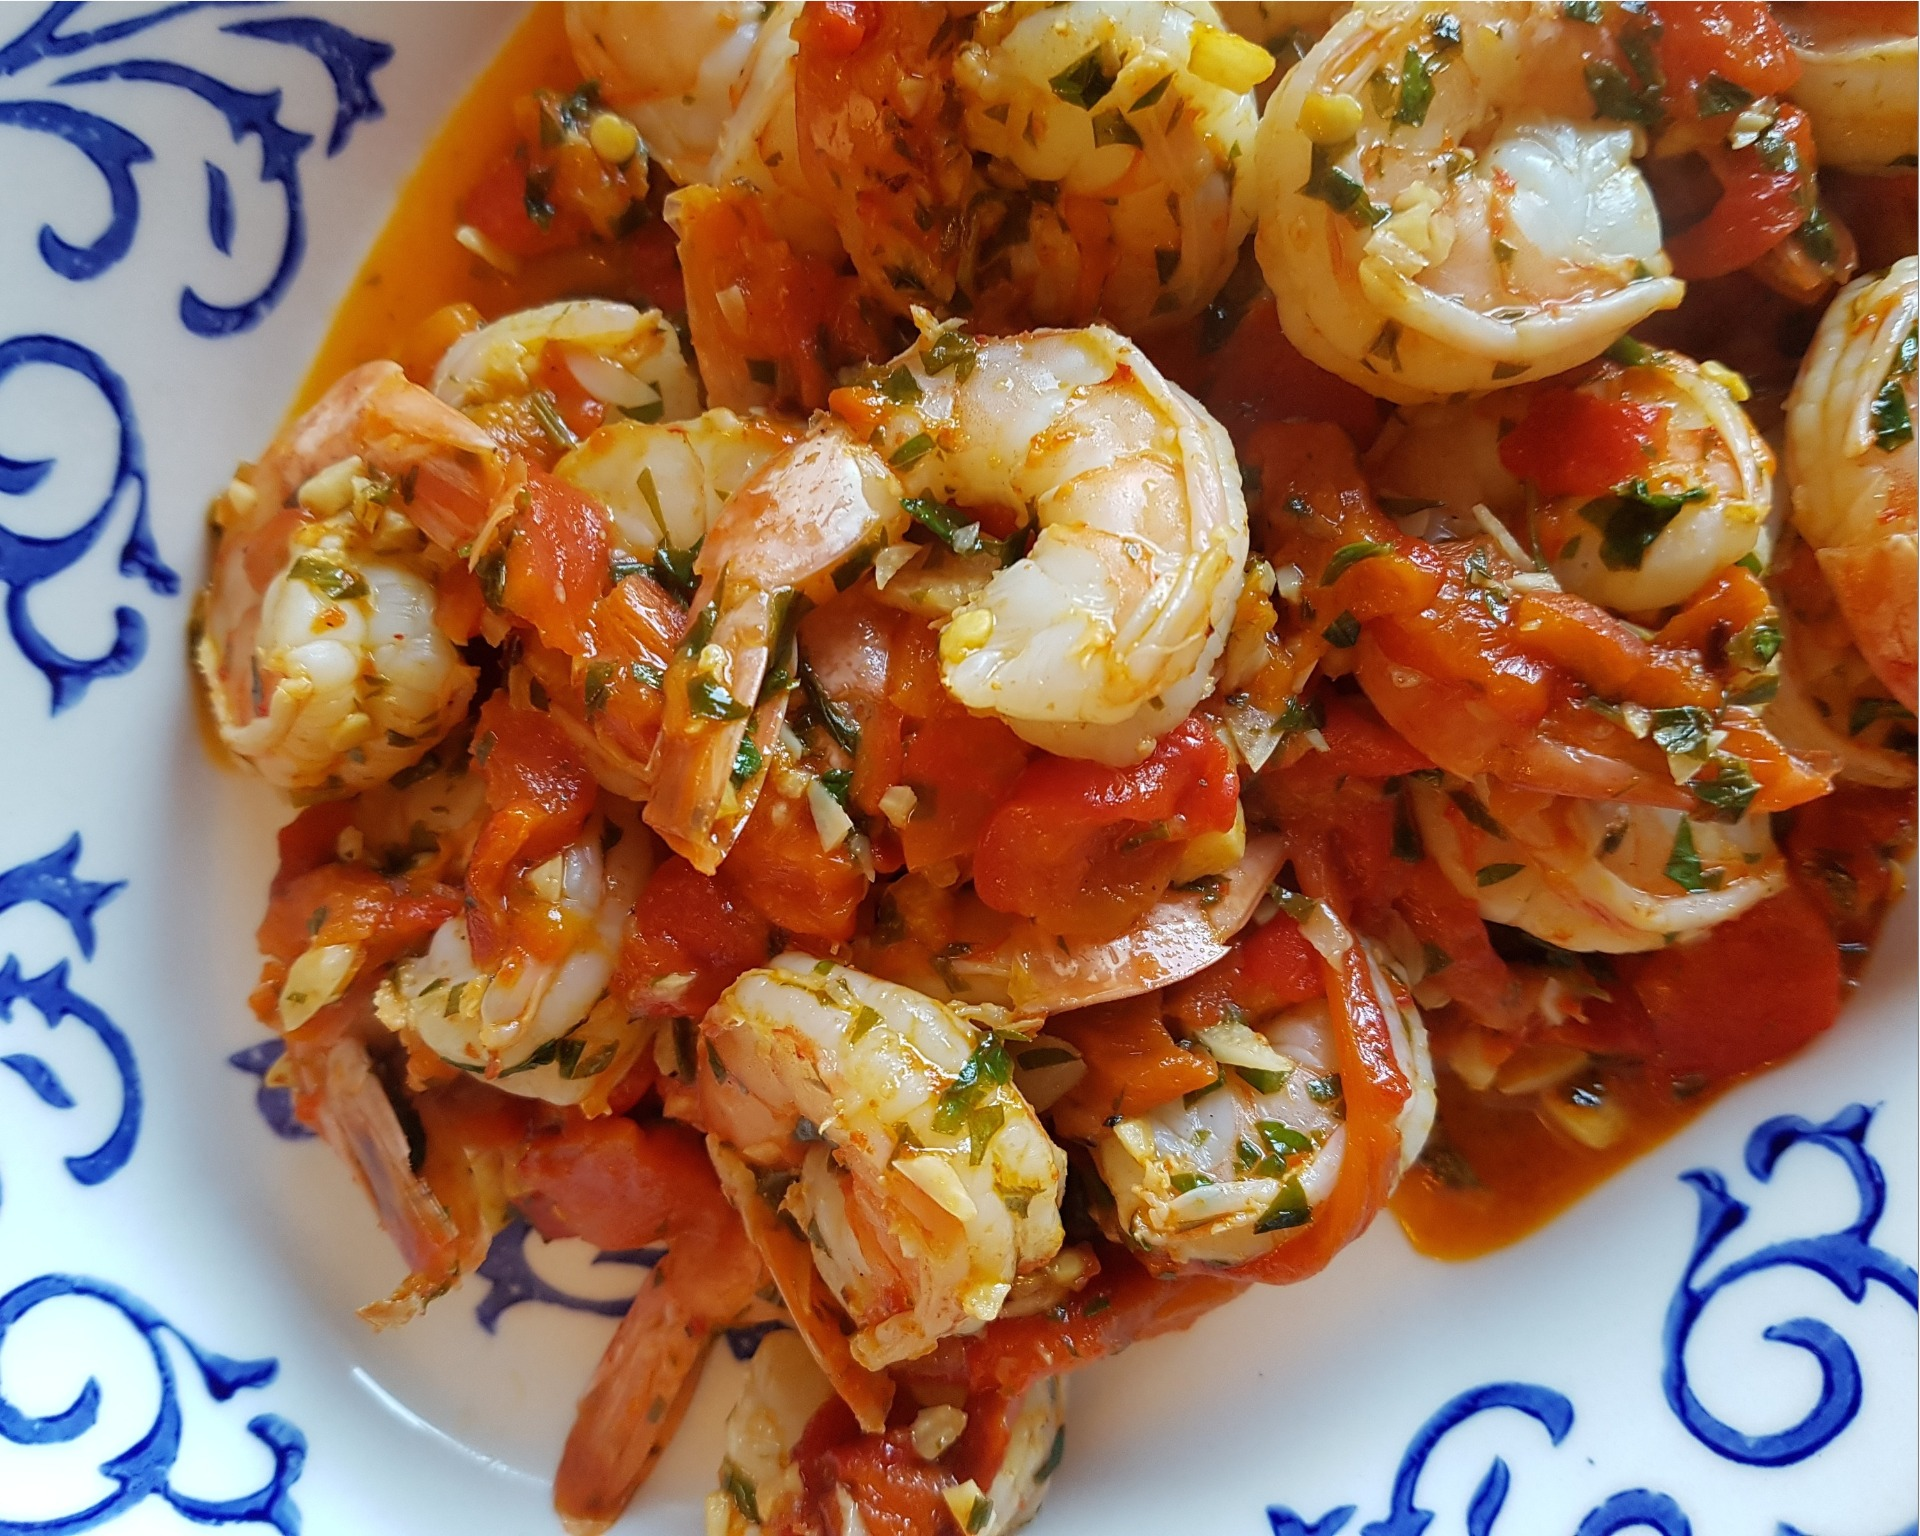 Skillet shrimp with roasted red pepper lemon sauce